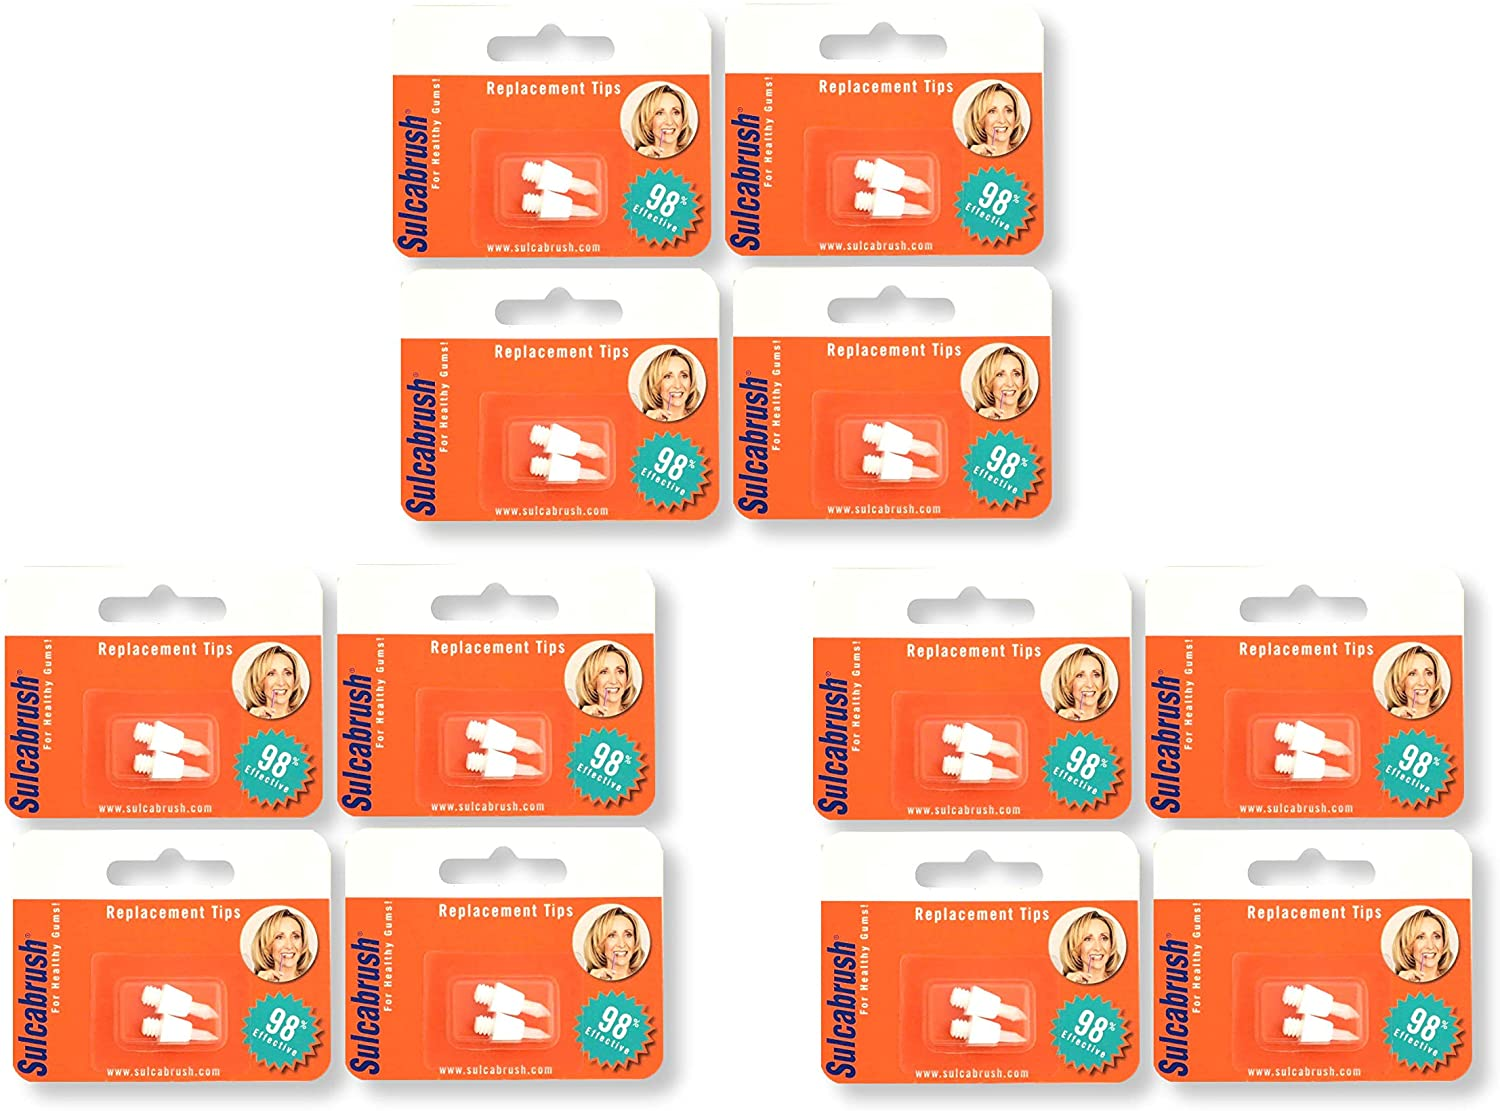 Sulcabrush Replacement Tips - Pack Of 2 (12 Pack)